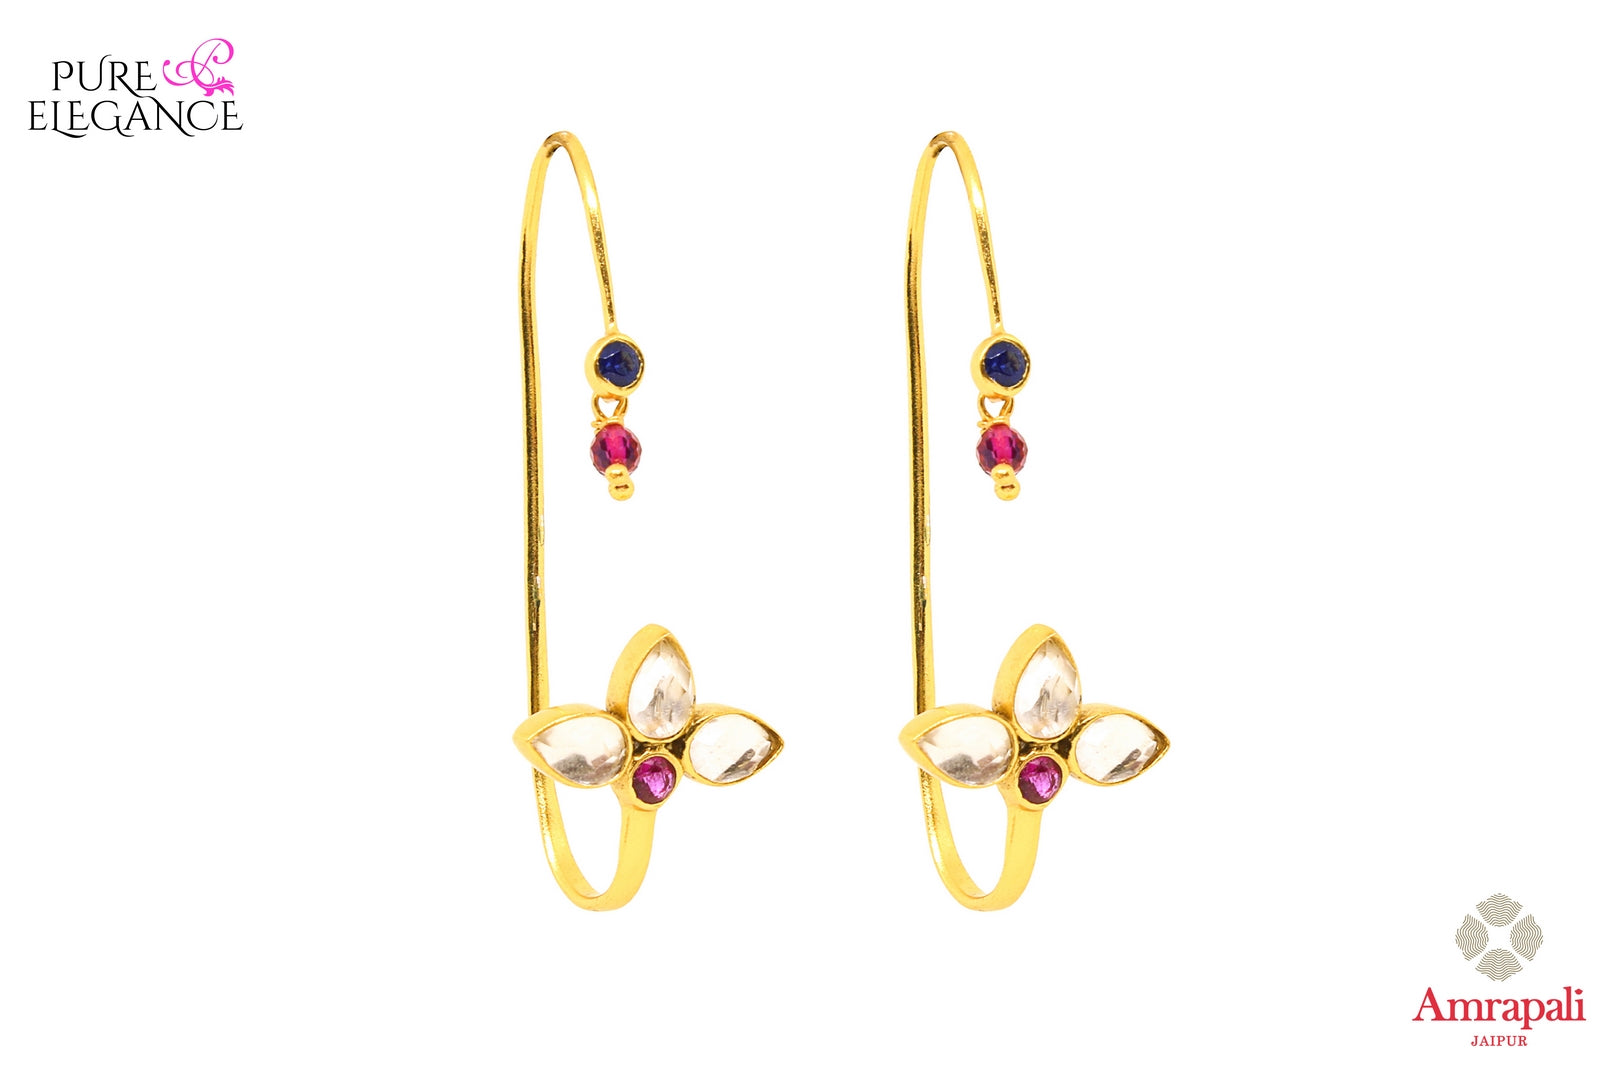 Buy silver gold plated hoop shape glass earrings online in USA from Amrapali. If you are looking for Indian silver gold plated jewellery in USA, then Pure Elegance Indian fashion store is the place for you. A whole range of exquisite of traditional Indian jewelry is waiting for you on our shelves, you can also opt to shop online.-front view